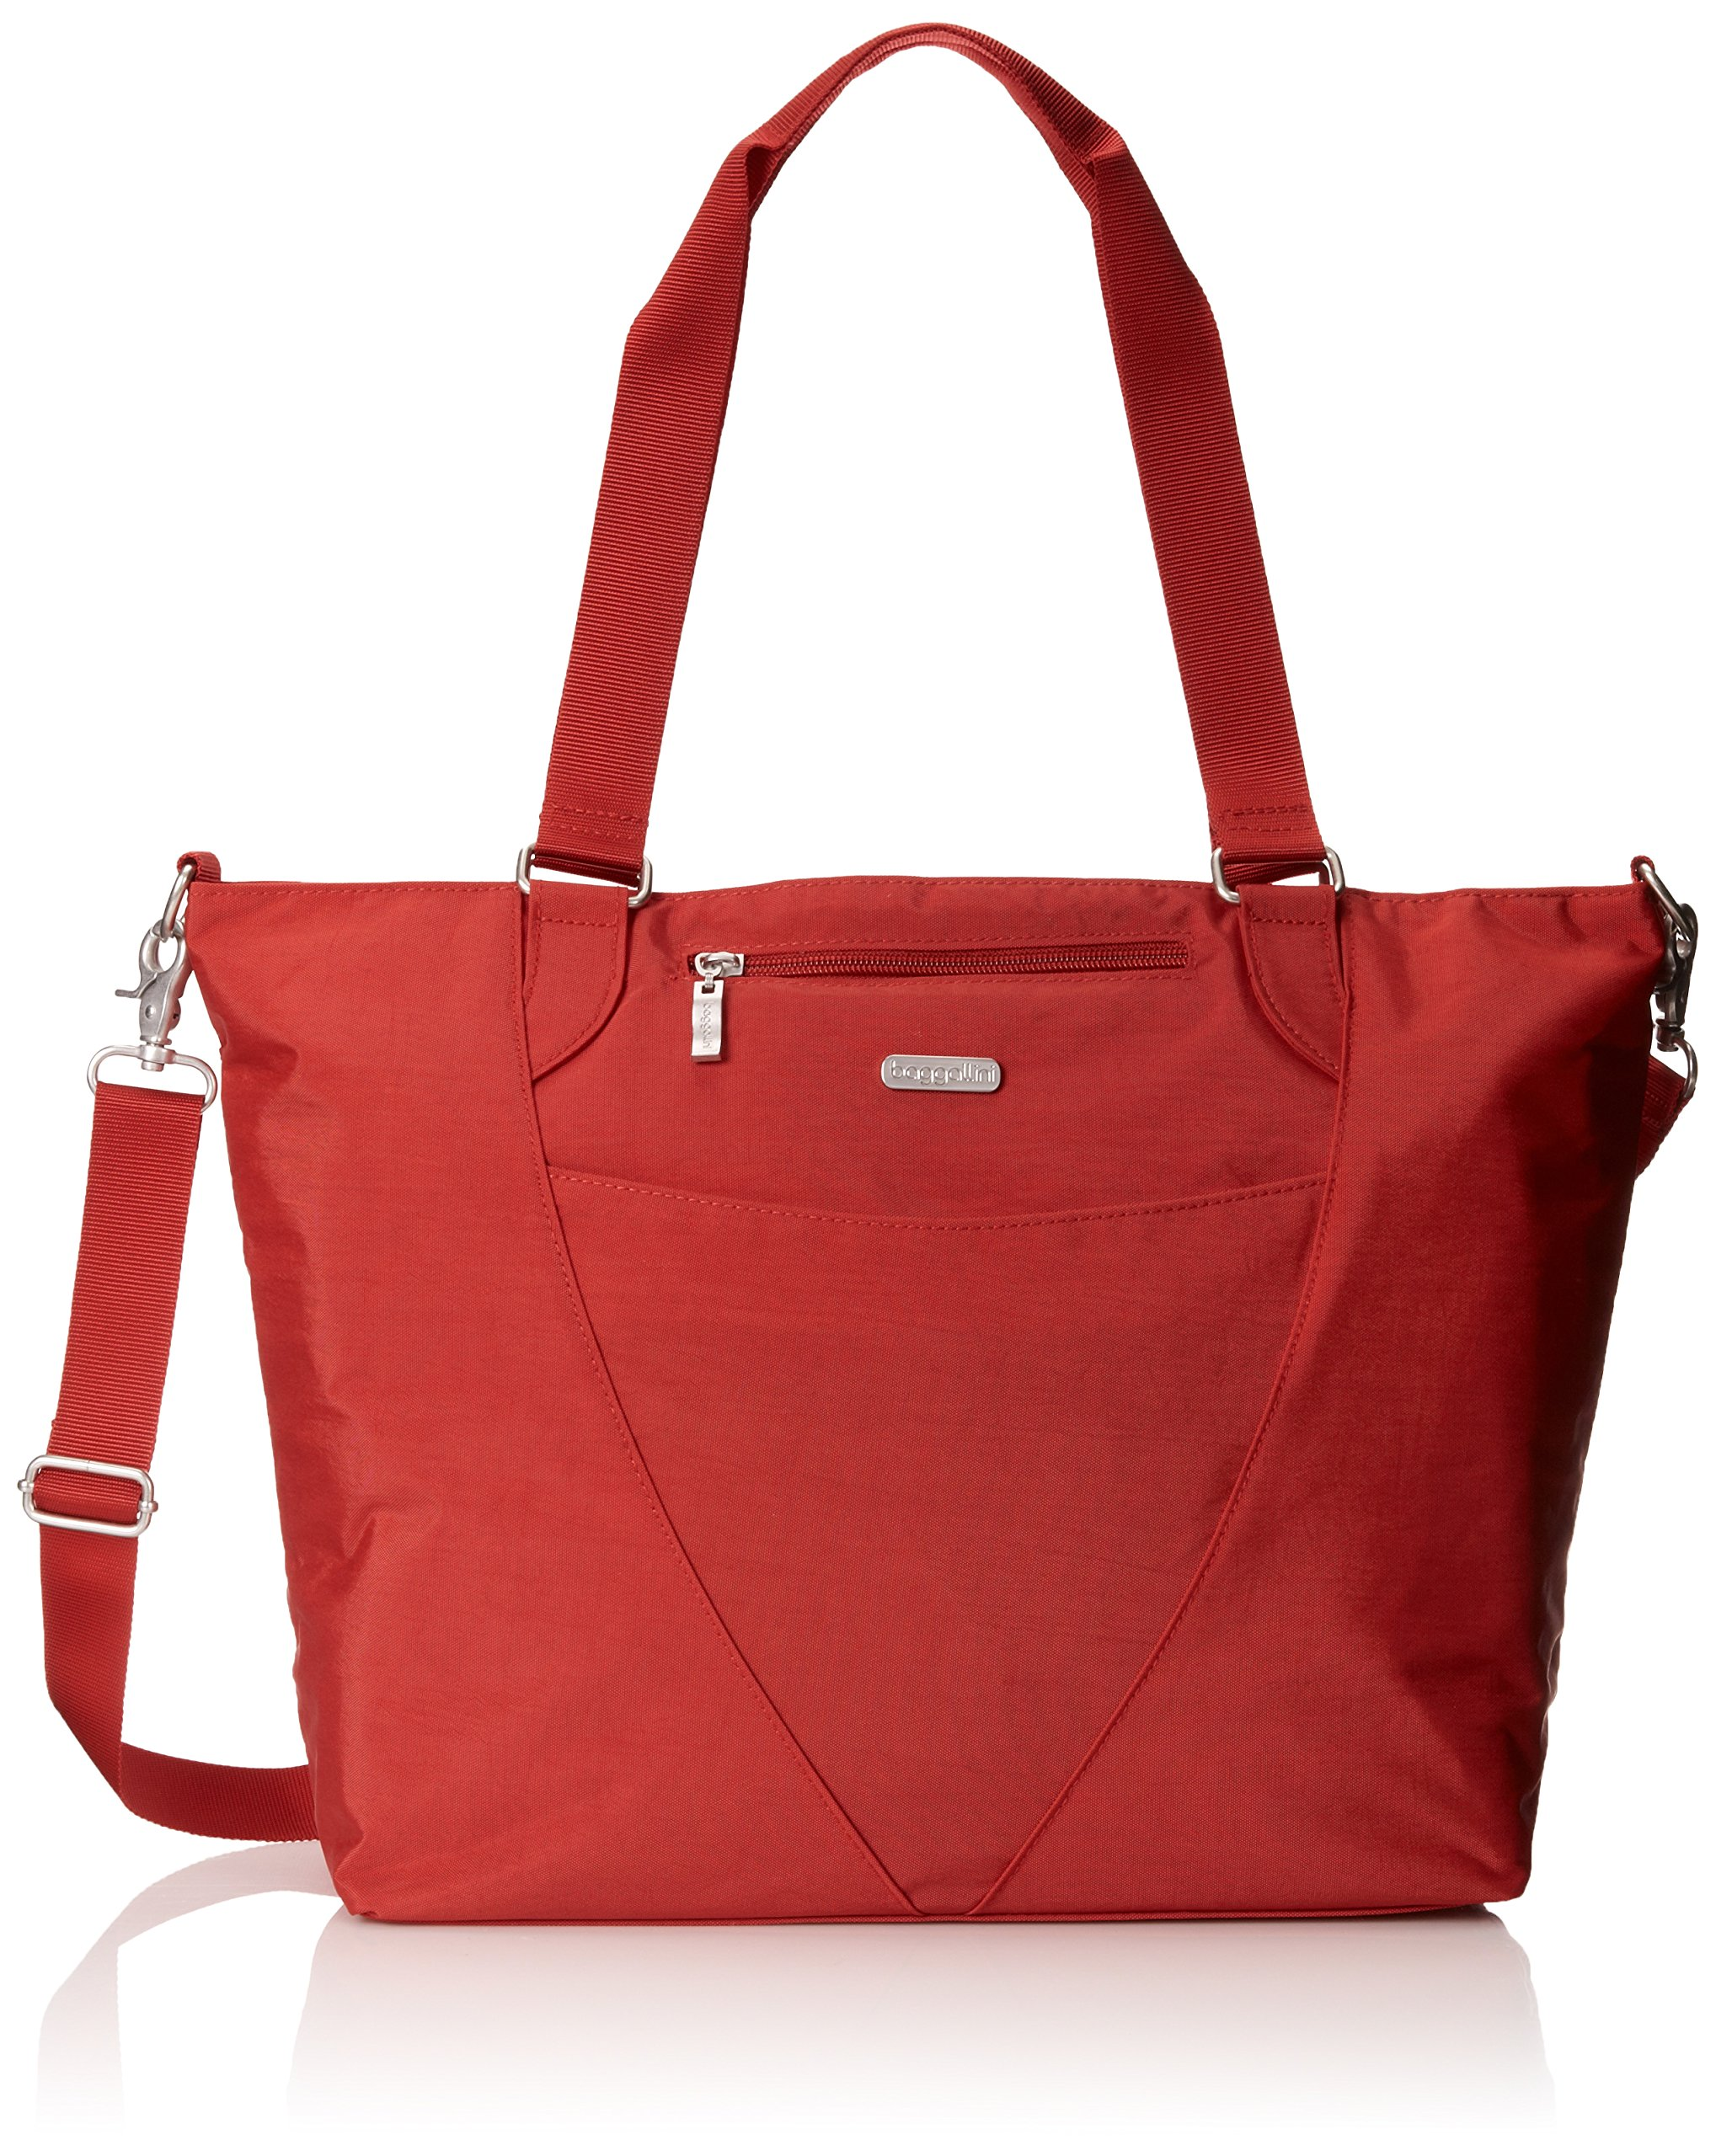 Baggallini Avenue Travel Tote, Apple, One Size